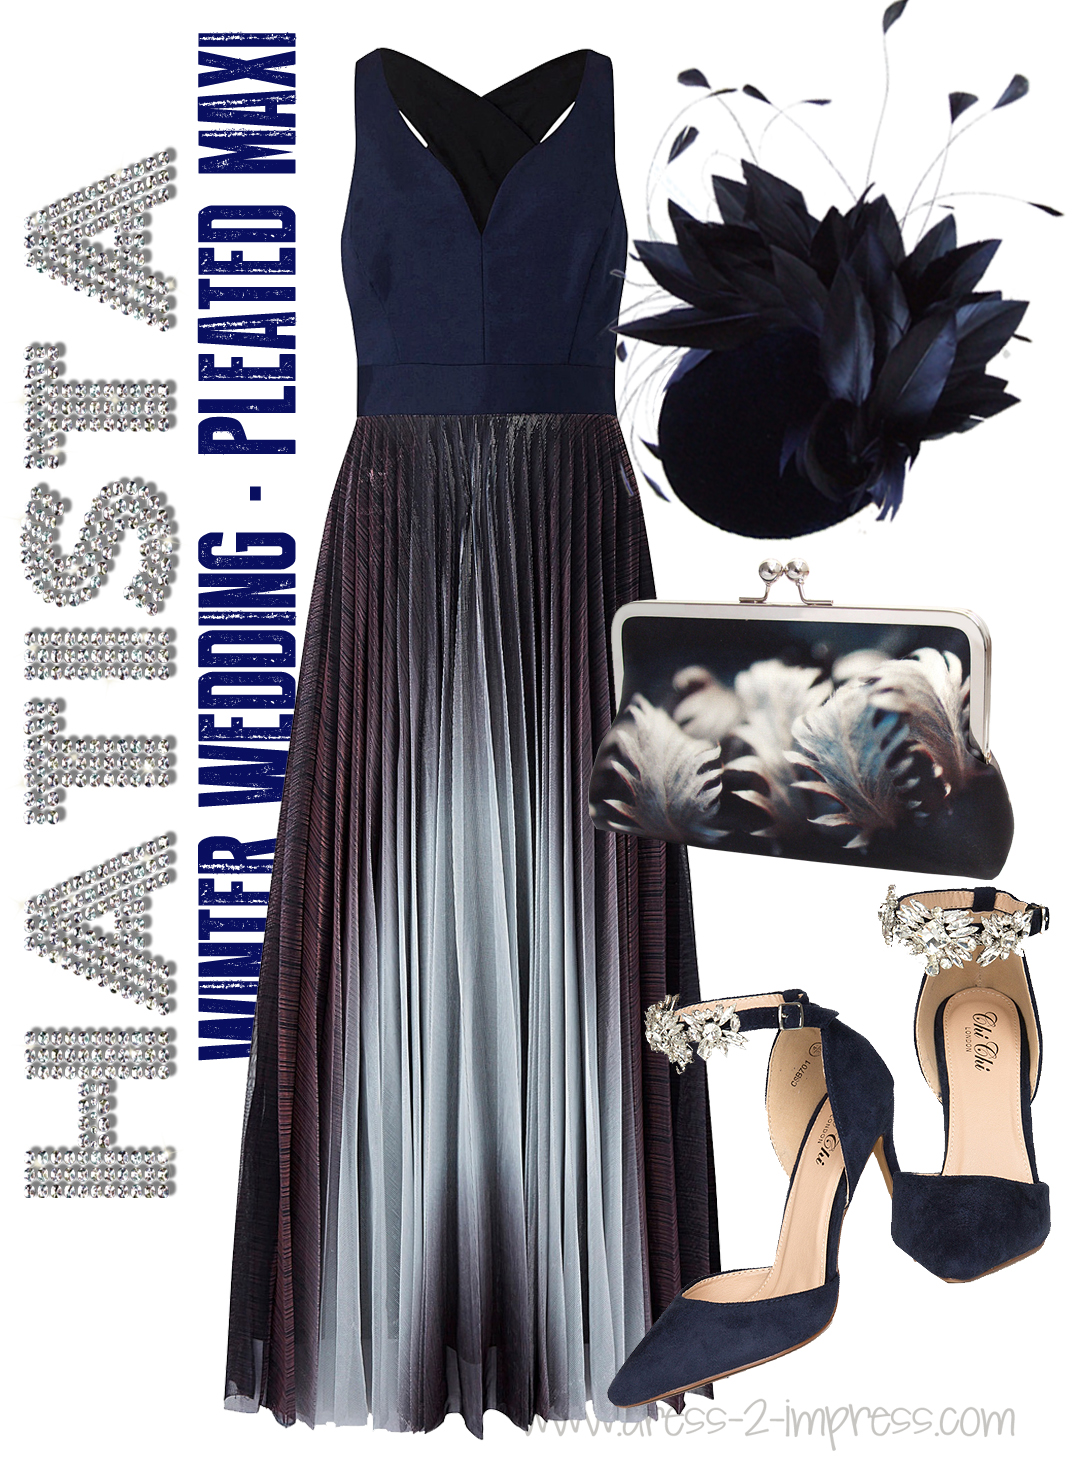 Winter Wedding Outfit Inspiration Pleated Maxi Dress Headpiece Shoes and Bag - What to wear to a winter wedding Outfit Ideas Inspiration Tips from THE HATISTA www.dress-2-impress.com #winterwedding #fashionista #wintercolours #styleguide #weddings #motherofthebride #weddingguest #outfits #outfitideas #ootd #outfits